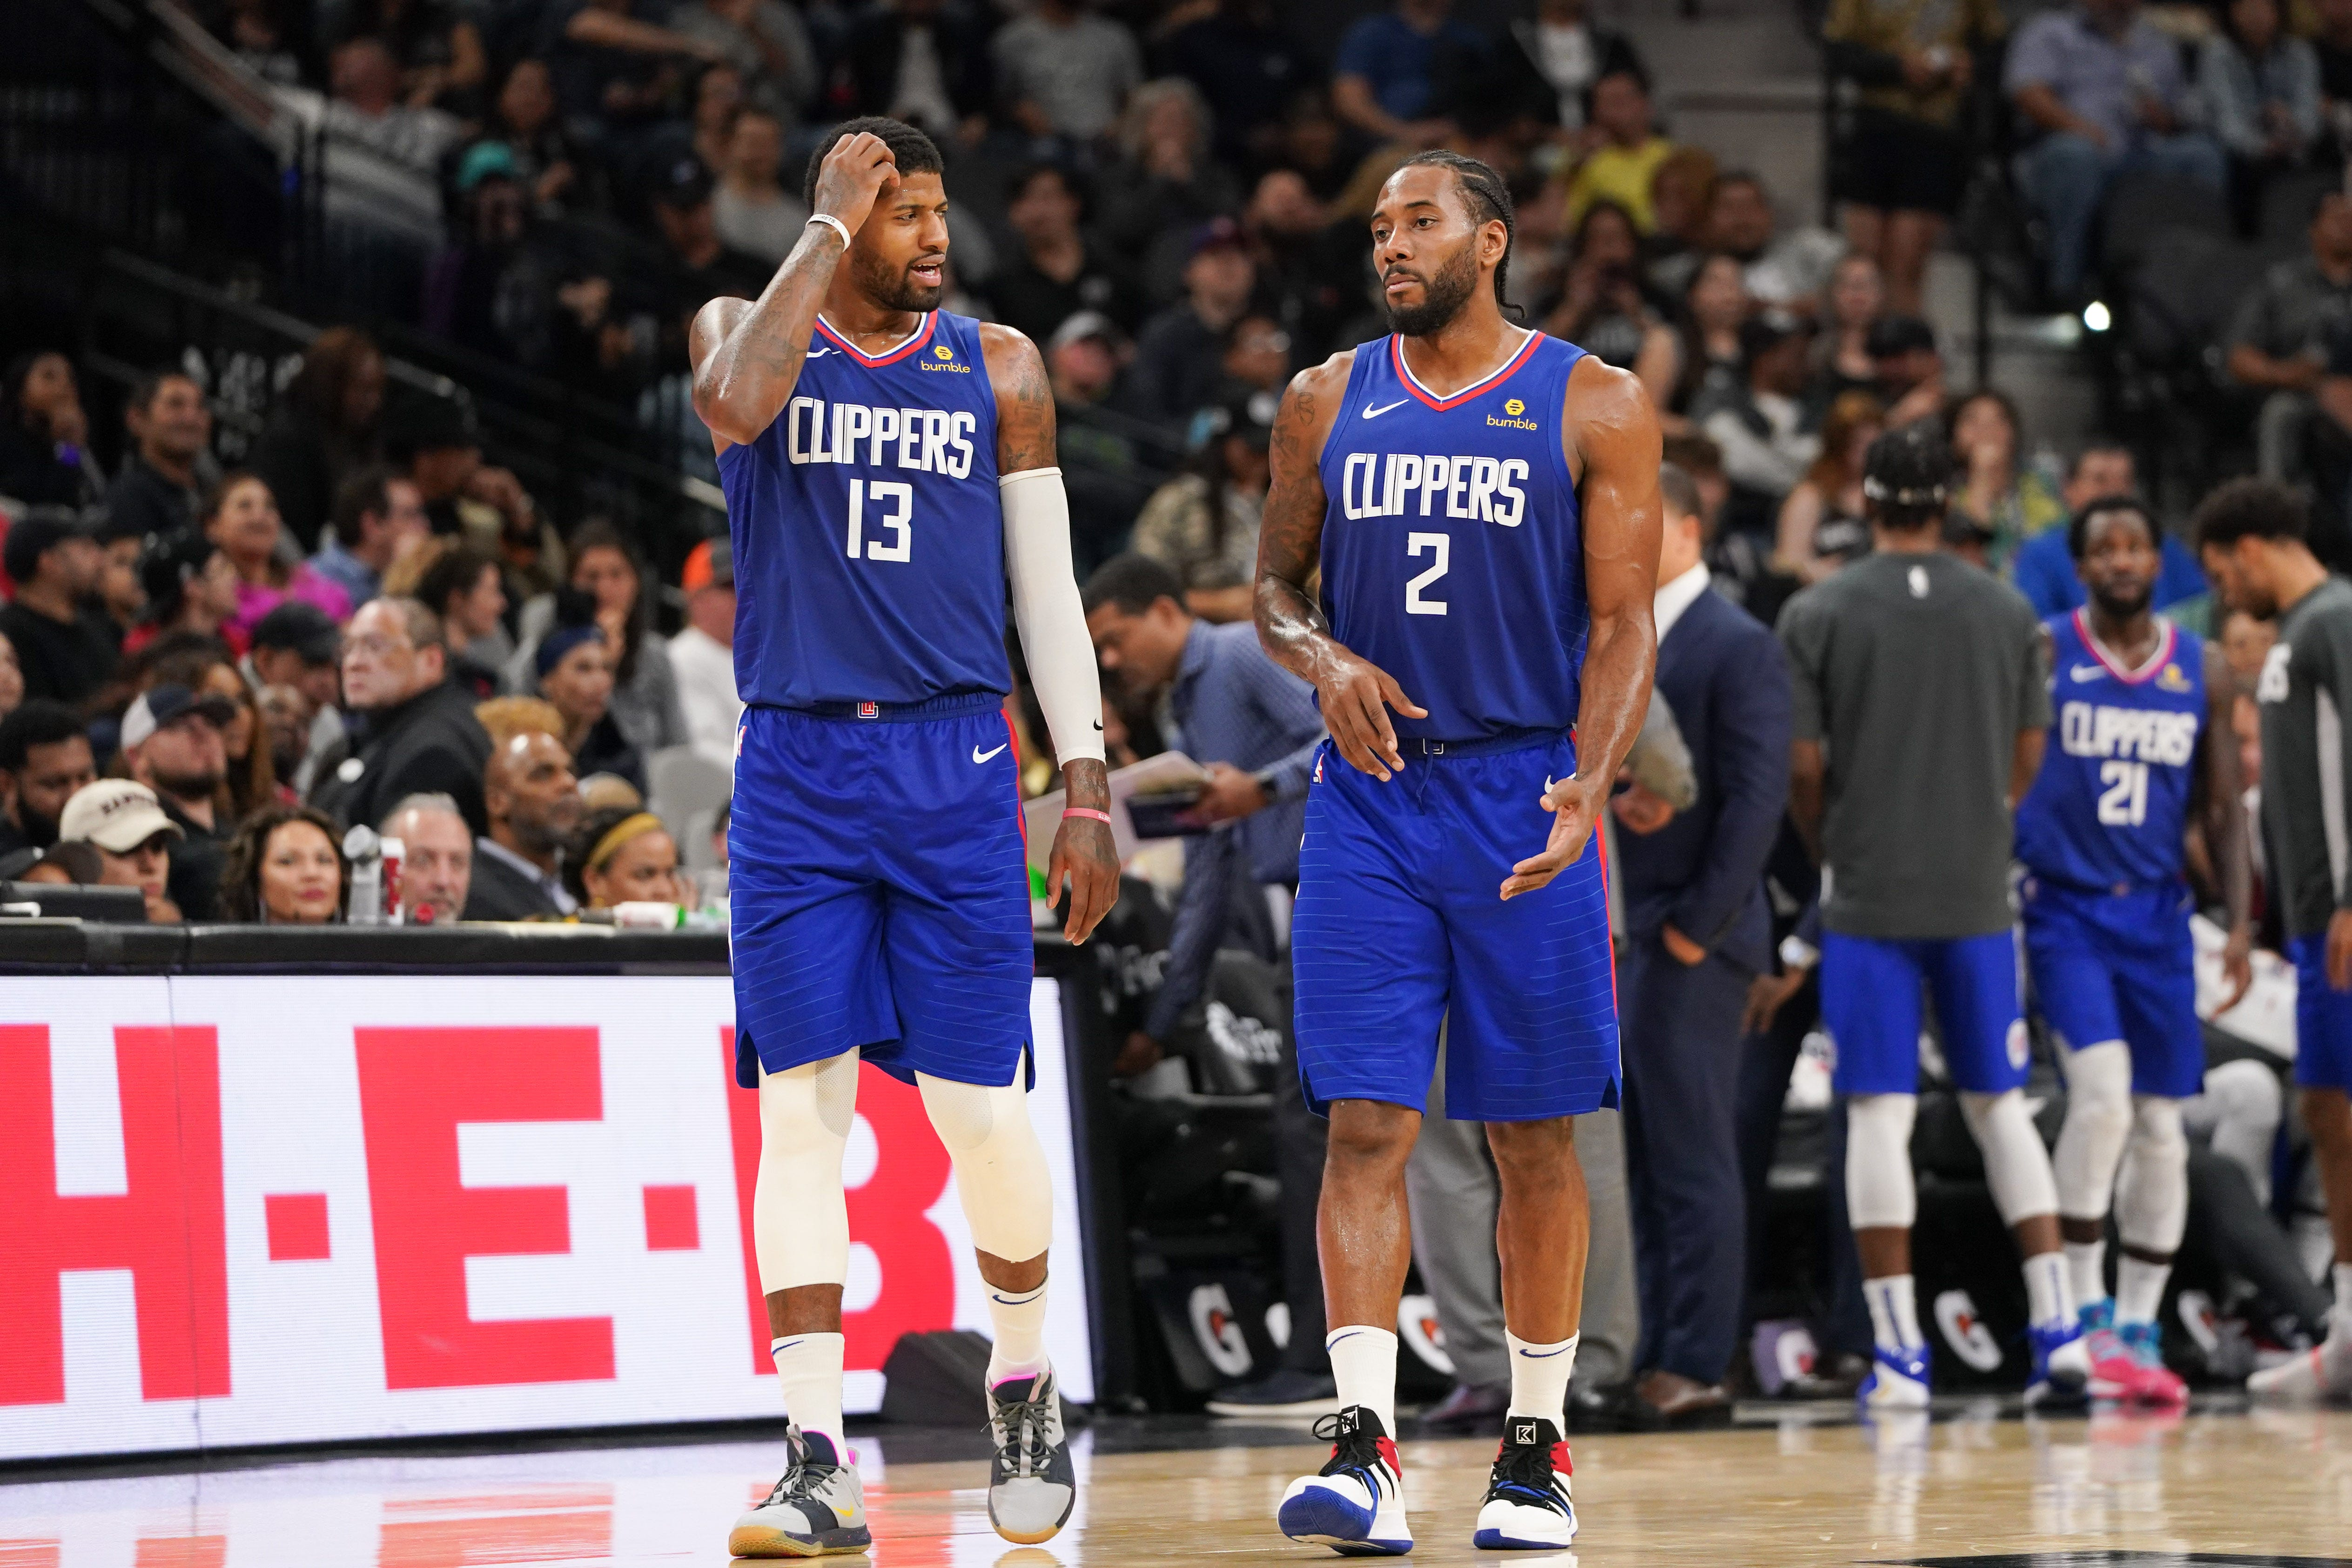 Opinion: Will Kawhi Leonard & Paul George deliver the Clippers an NBA championship?